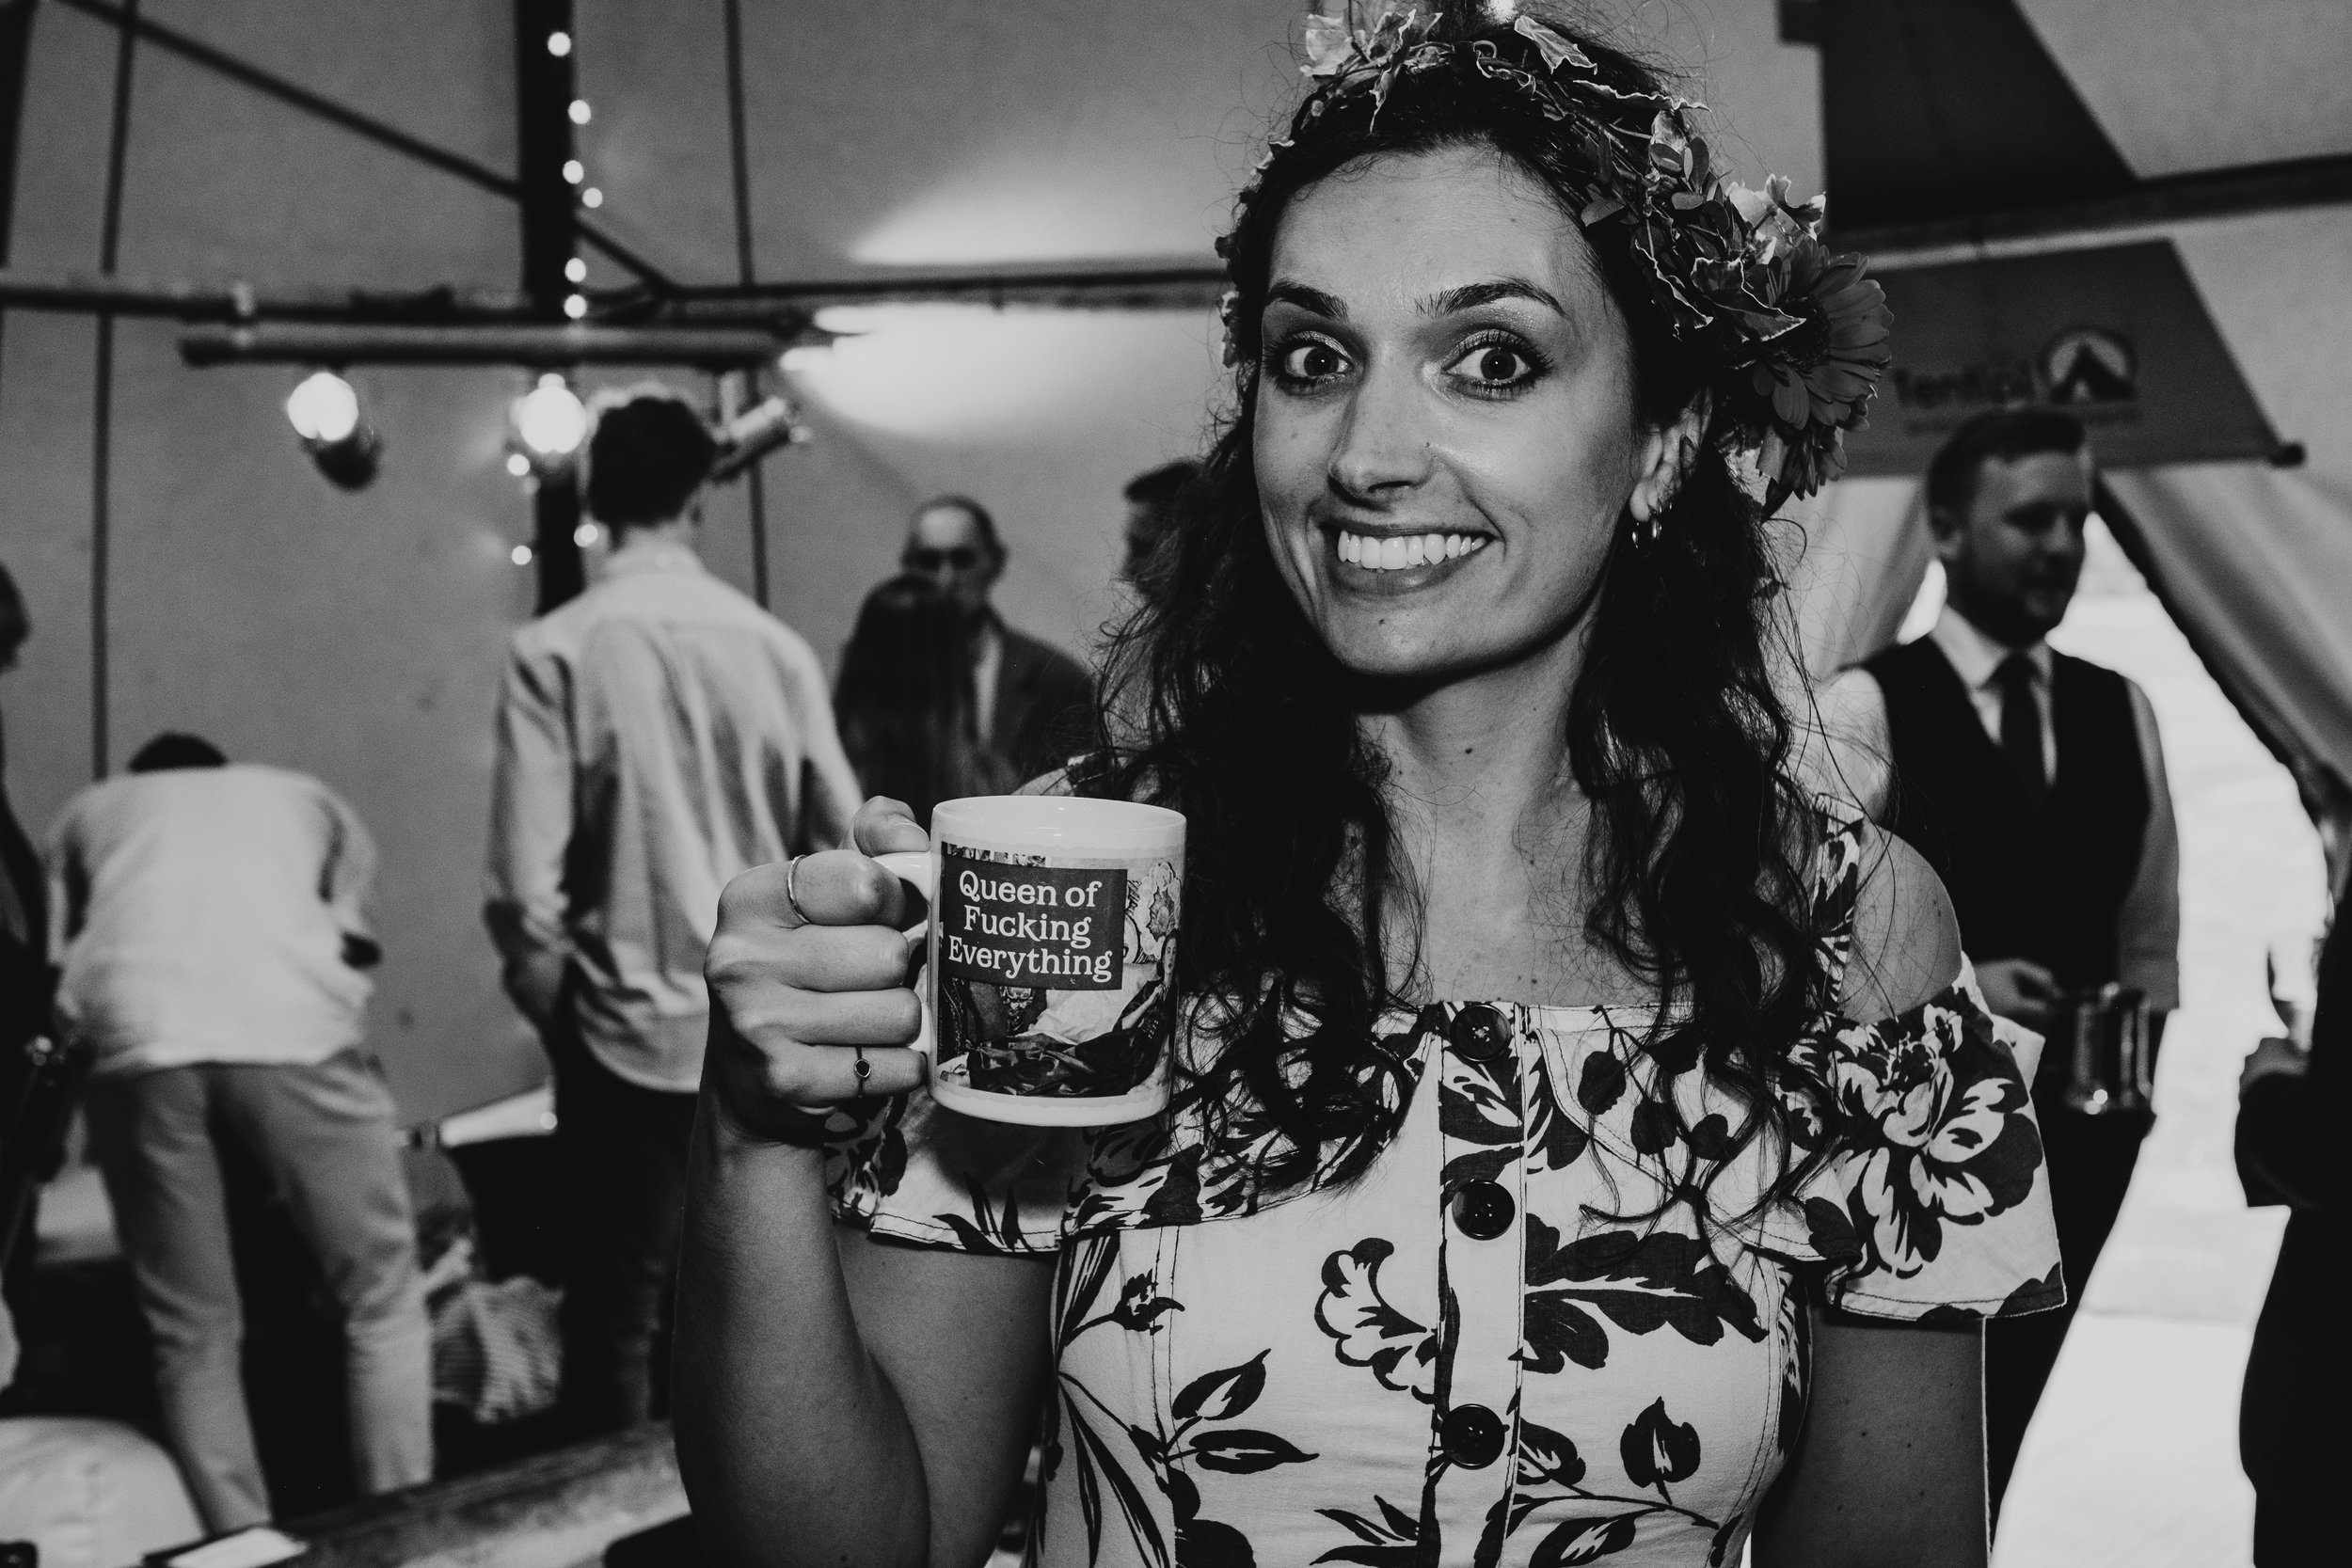 Bridesmaid holding 'Queen of Fucking Everything' mug